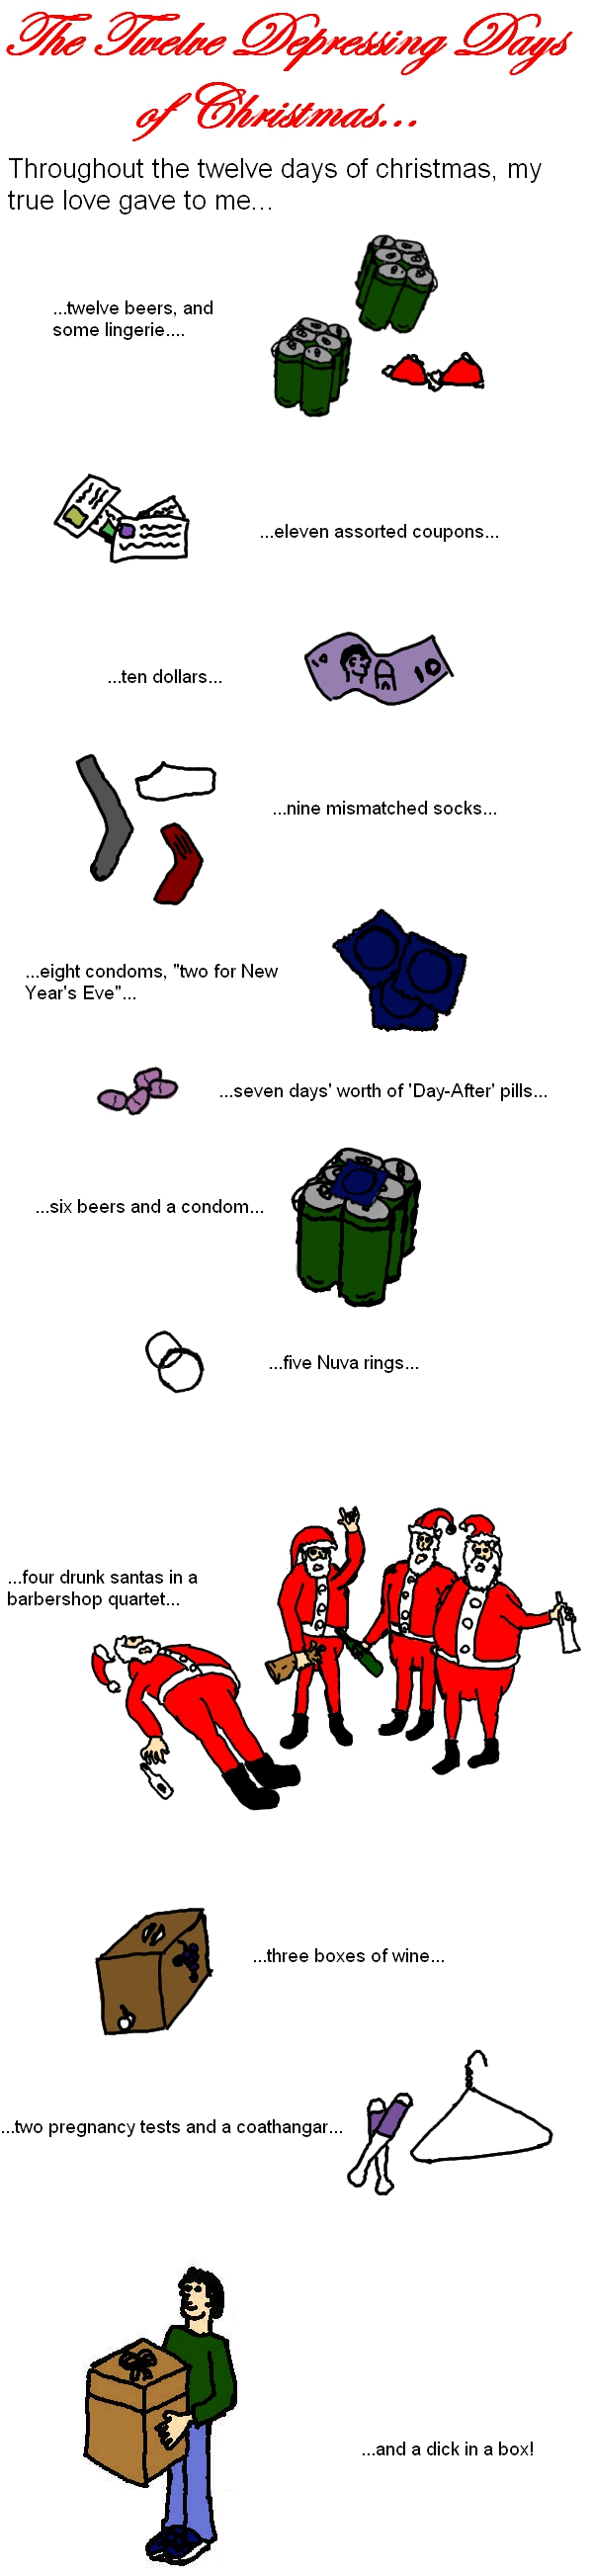 Twelve Depressing Days of Christmas